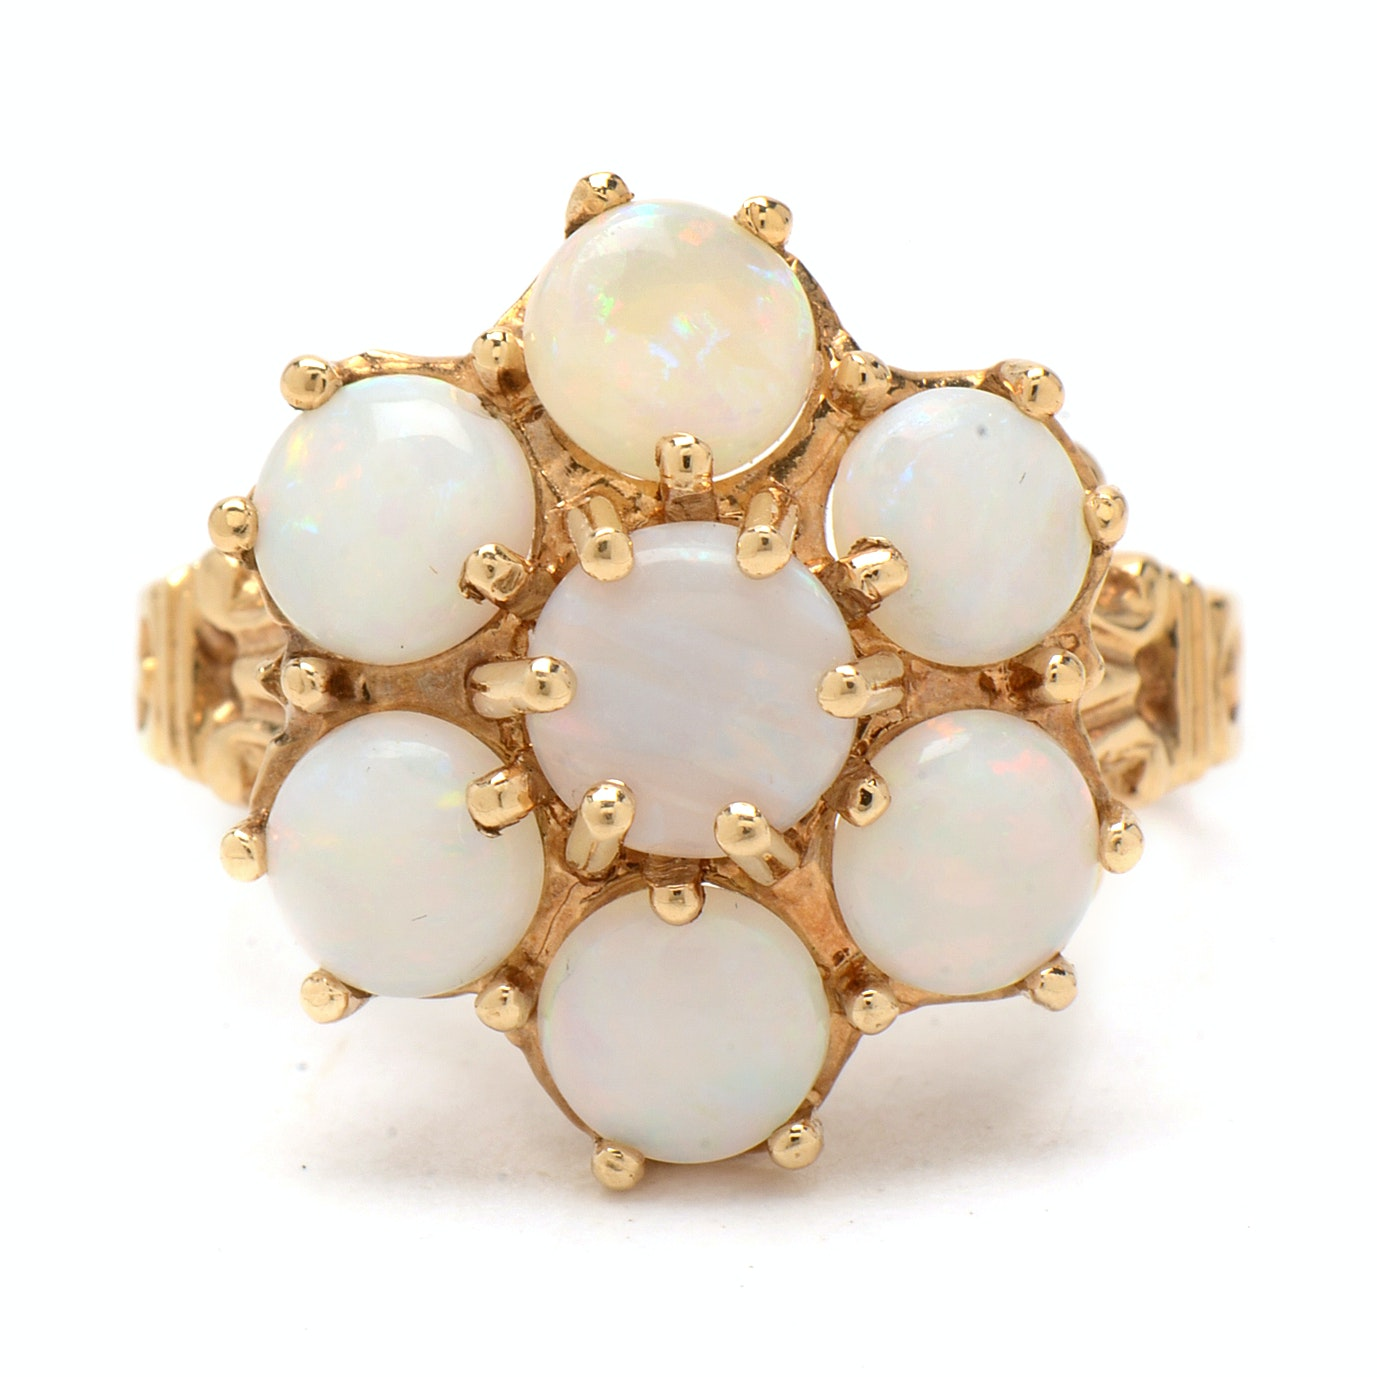 14K Yellow Gold Ring Featuring Seven Opal Cabochons